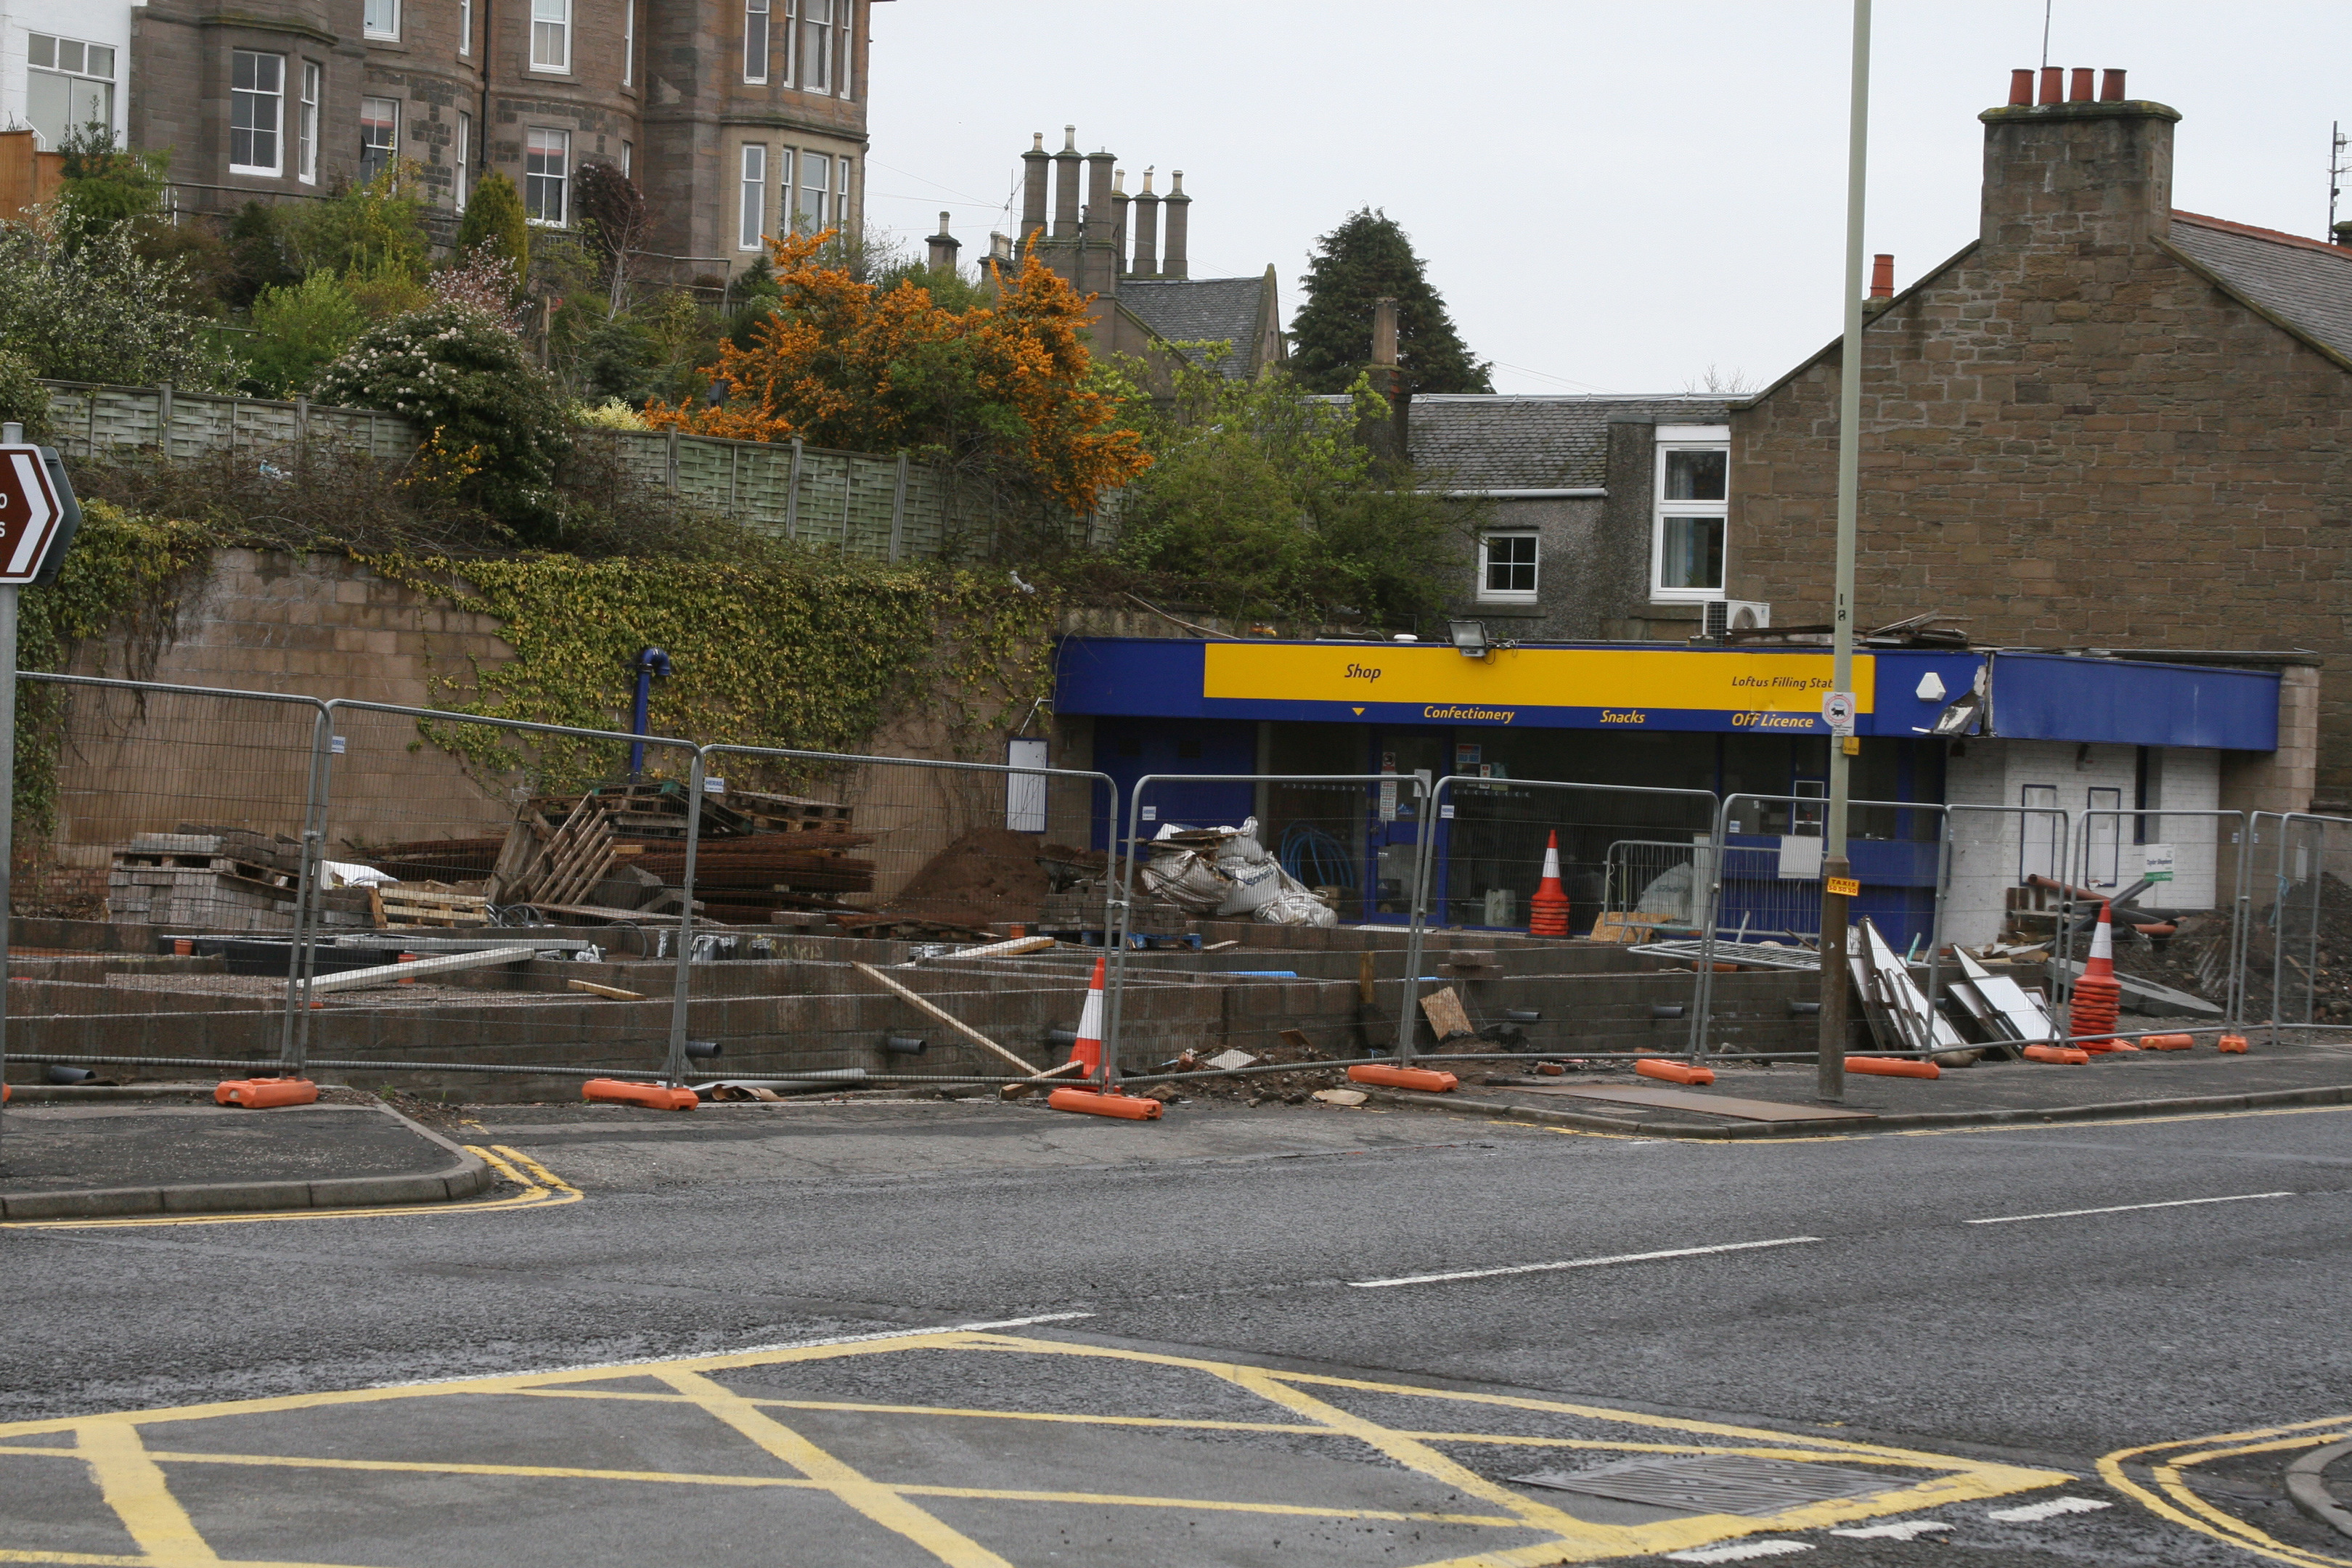 Demolition of the old Loftus petrol station in 2006.